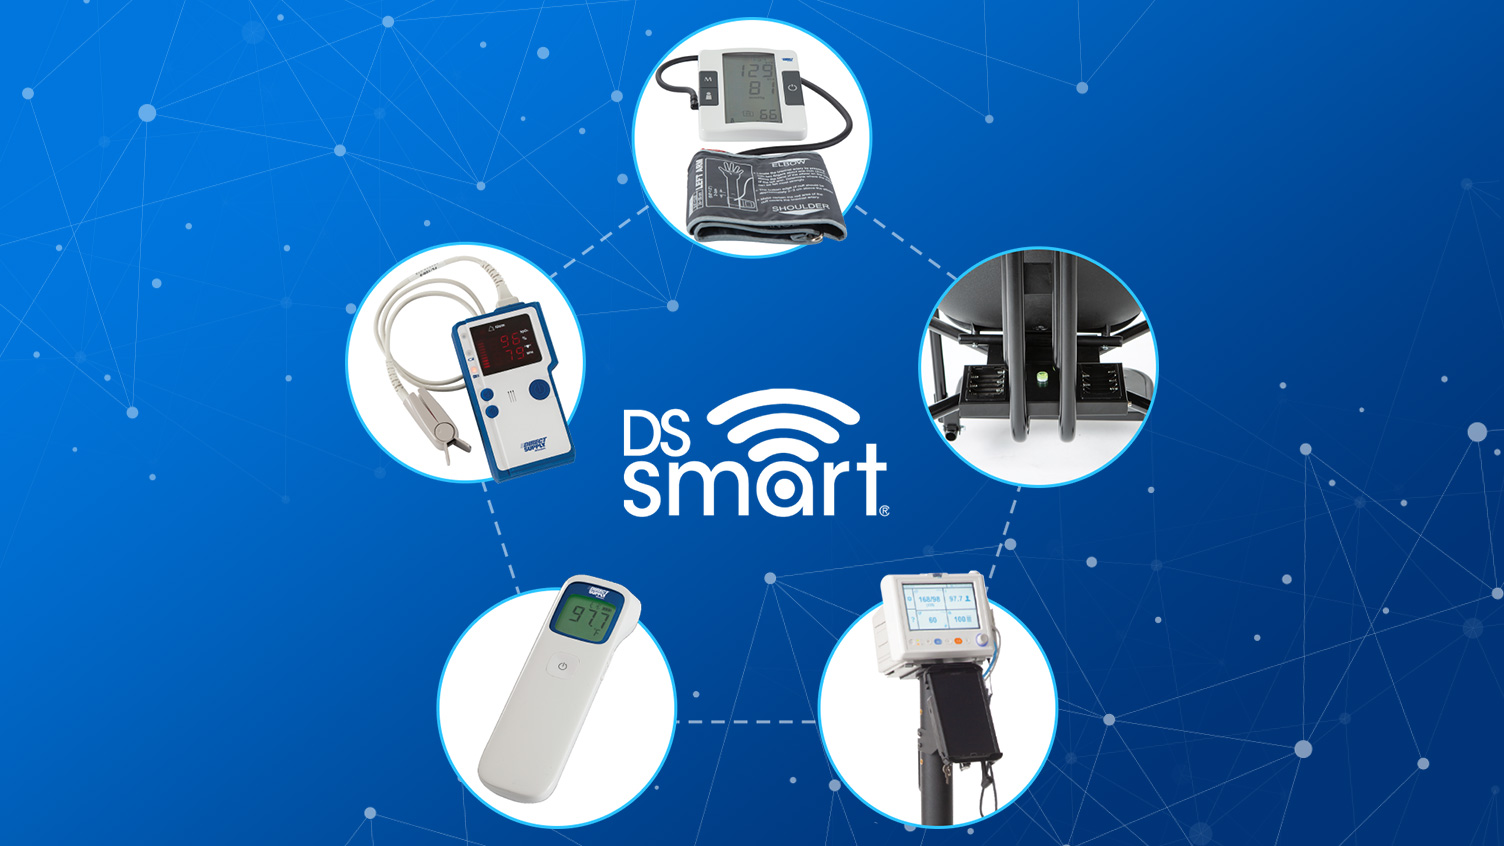 Ask the Expert: What's New in the DS smart Platform?